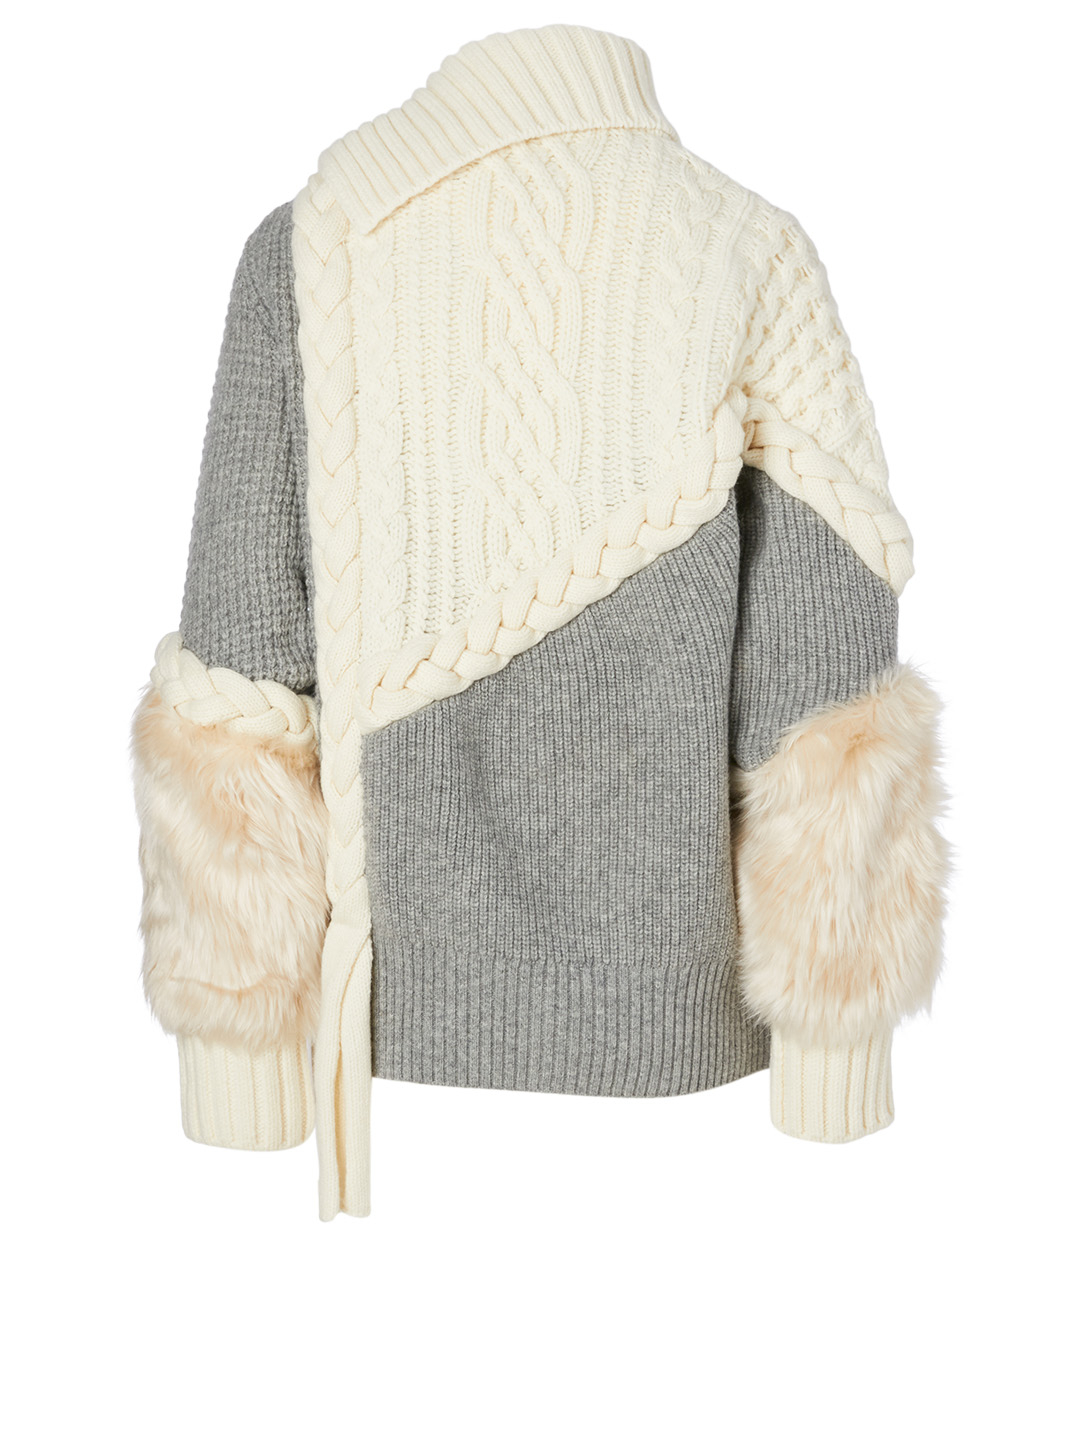 SACAI Wool-Blend Cable-Knit Sweater Women's Neutral